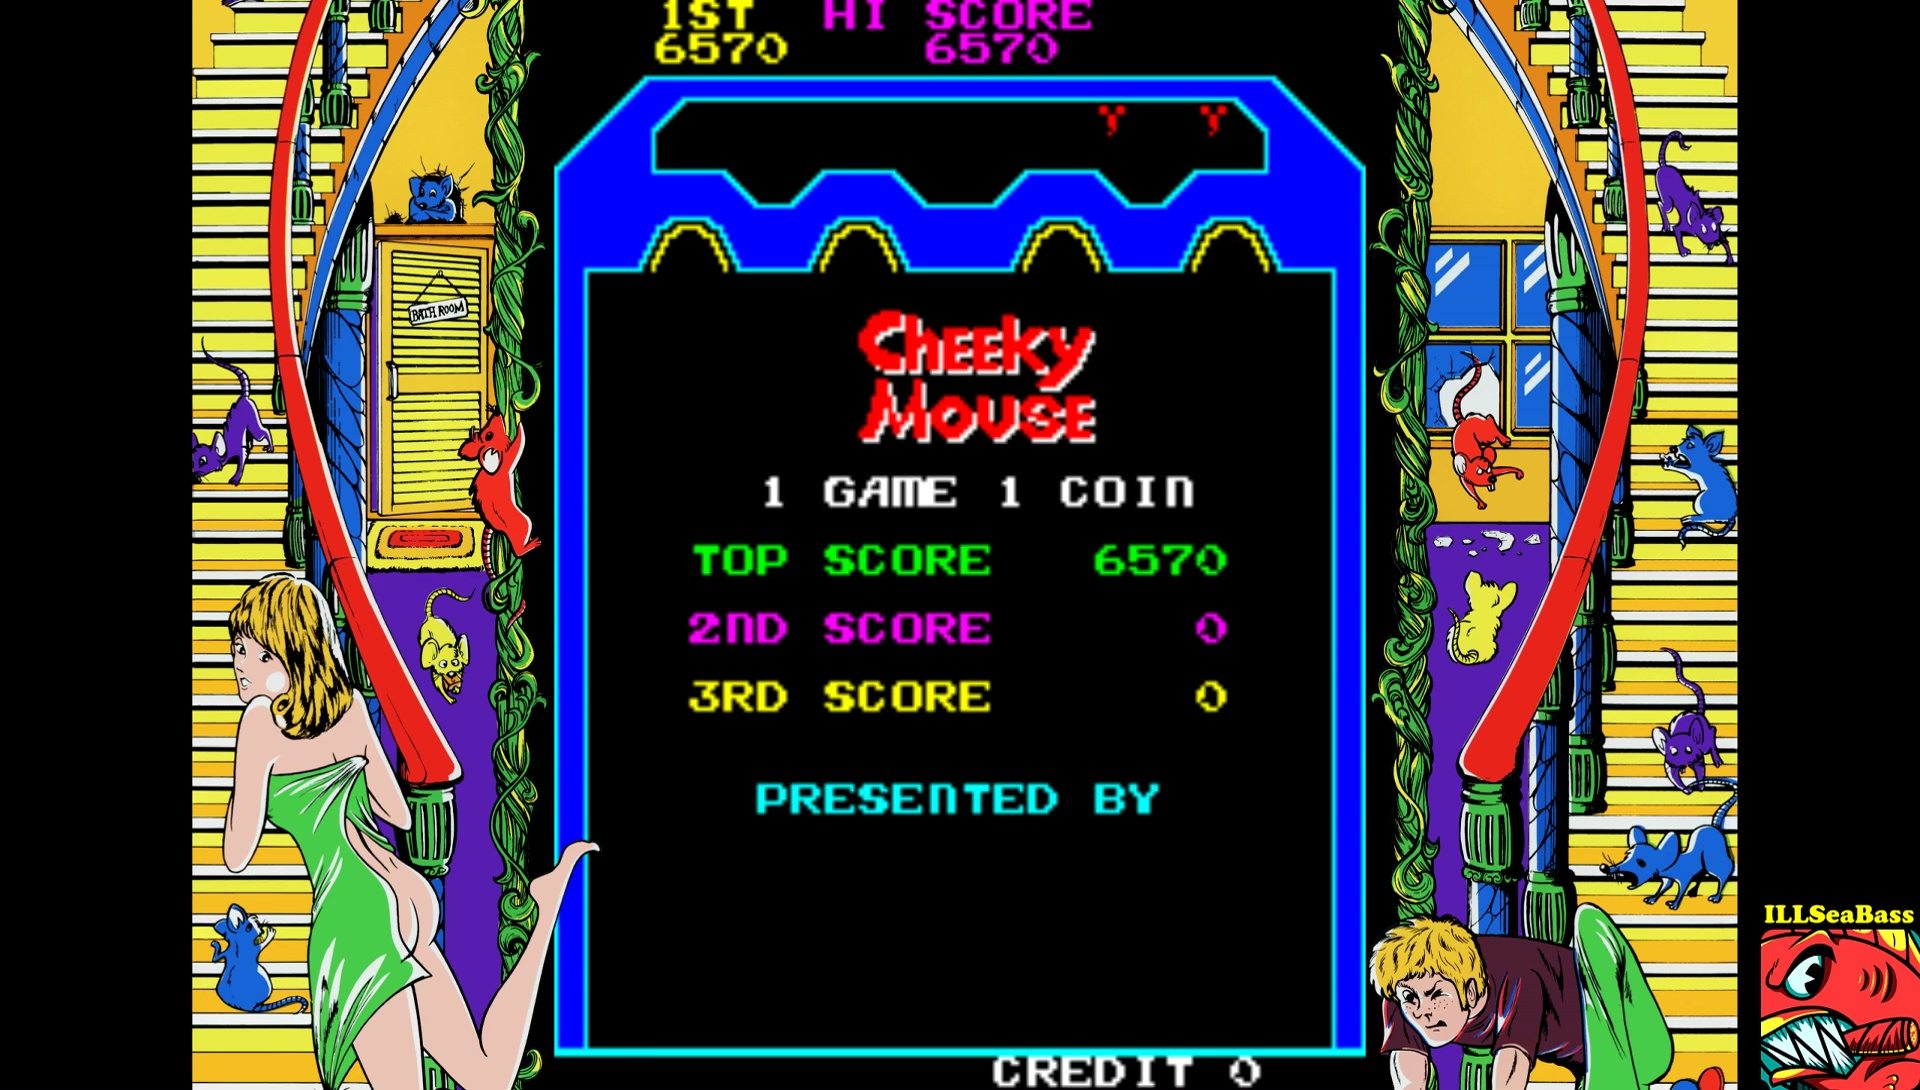 ILLSeaBass: Cheeky Mouse [cheekyms] (Arcade Emulated / M.A.M.E.) 6,570 points on 2017-07-15 23:31:49